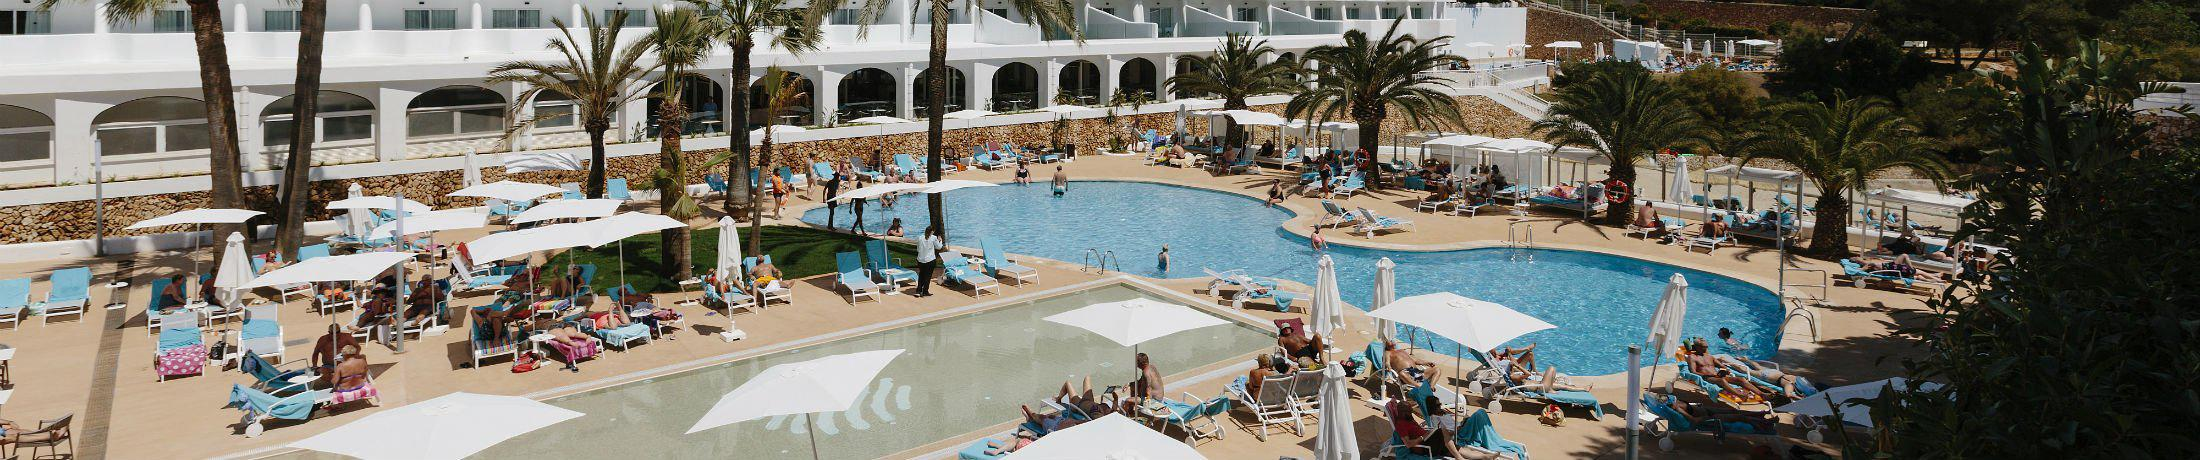 Opiniones AluaSoul Mallorca Resort (Adults Only) Hotel Cala d'Or, Mallorca